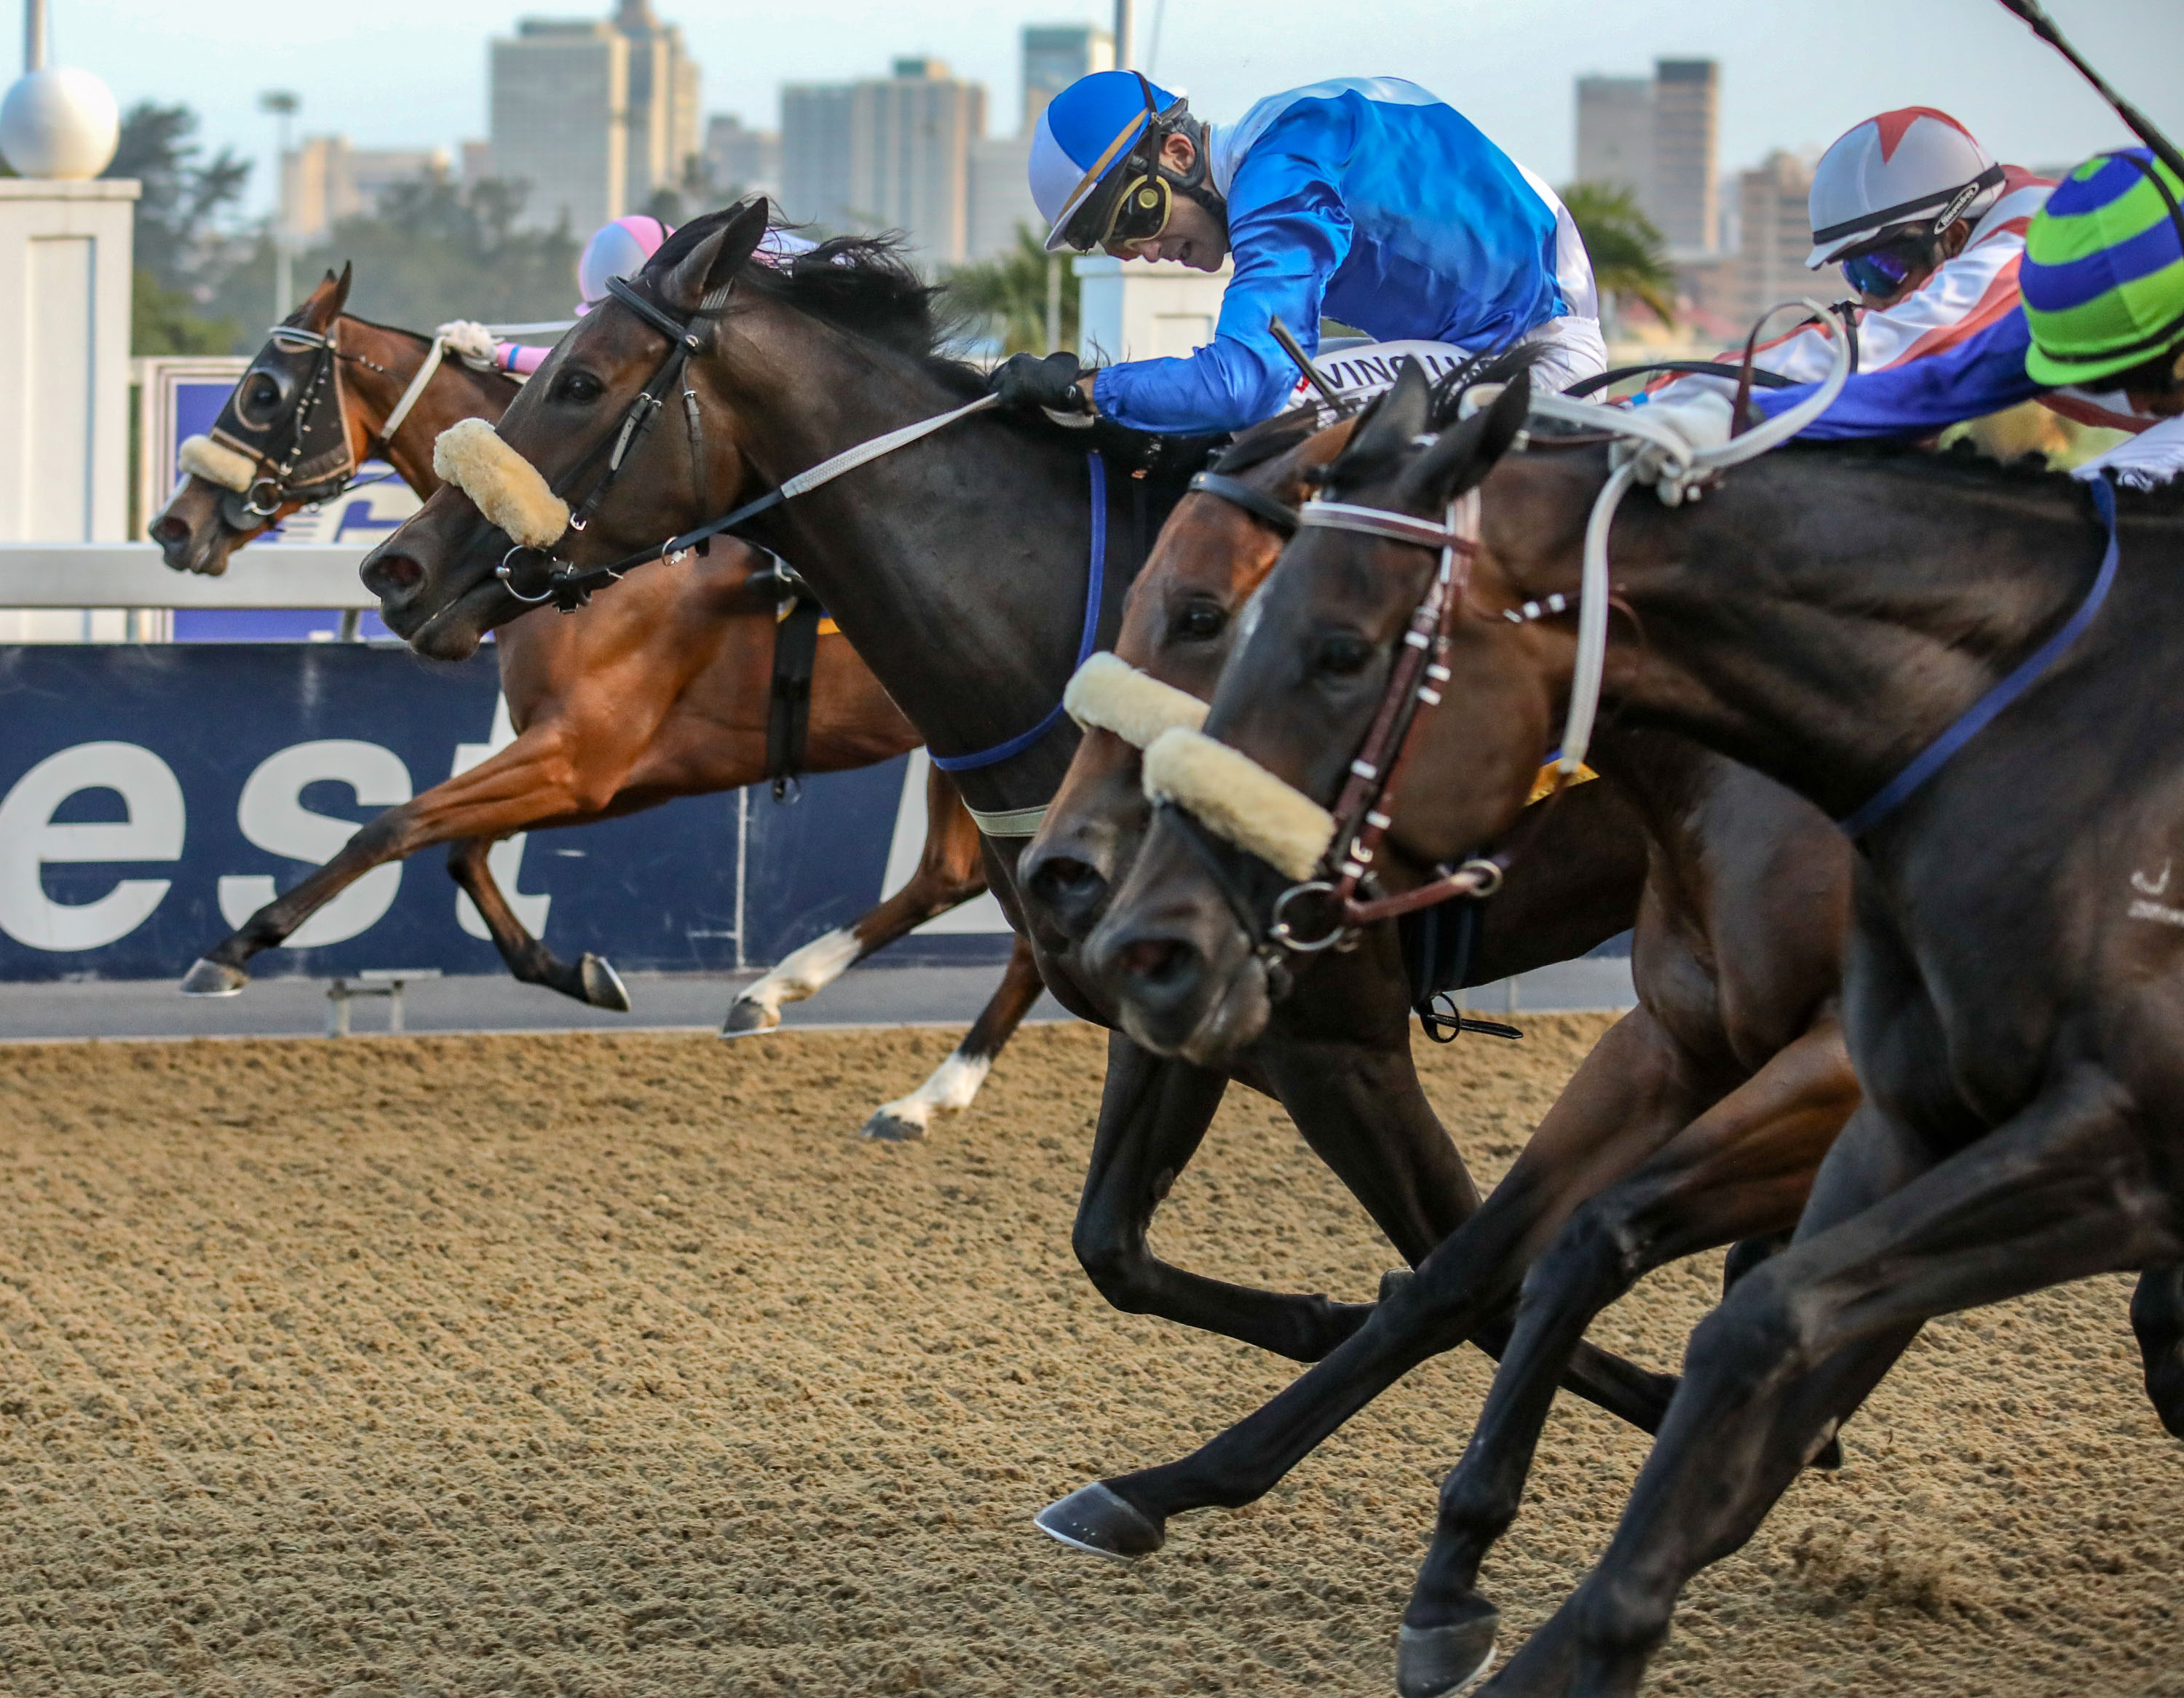 Sweet Preserve in the blue and white colours gets up to beat a close finishing field in a bravely fought race. Image: Candiese Marnewick